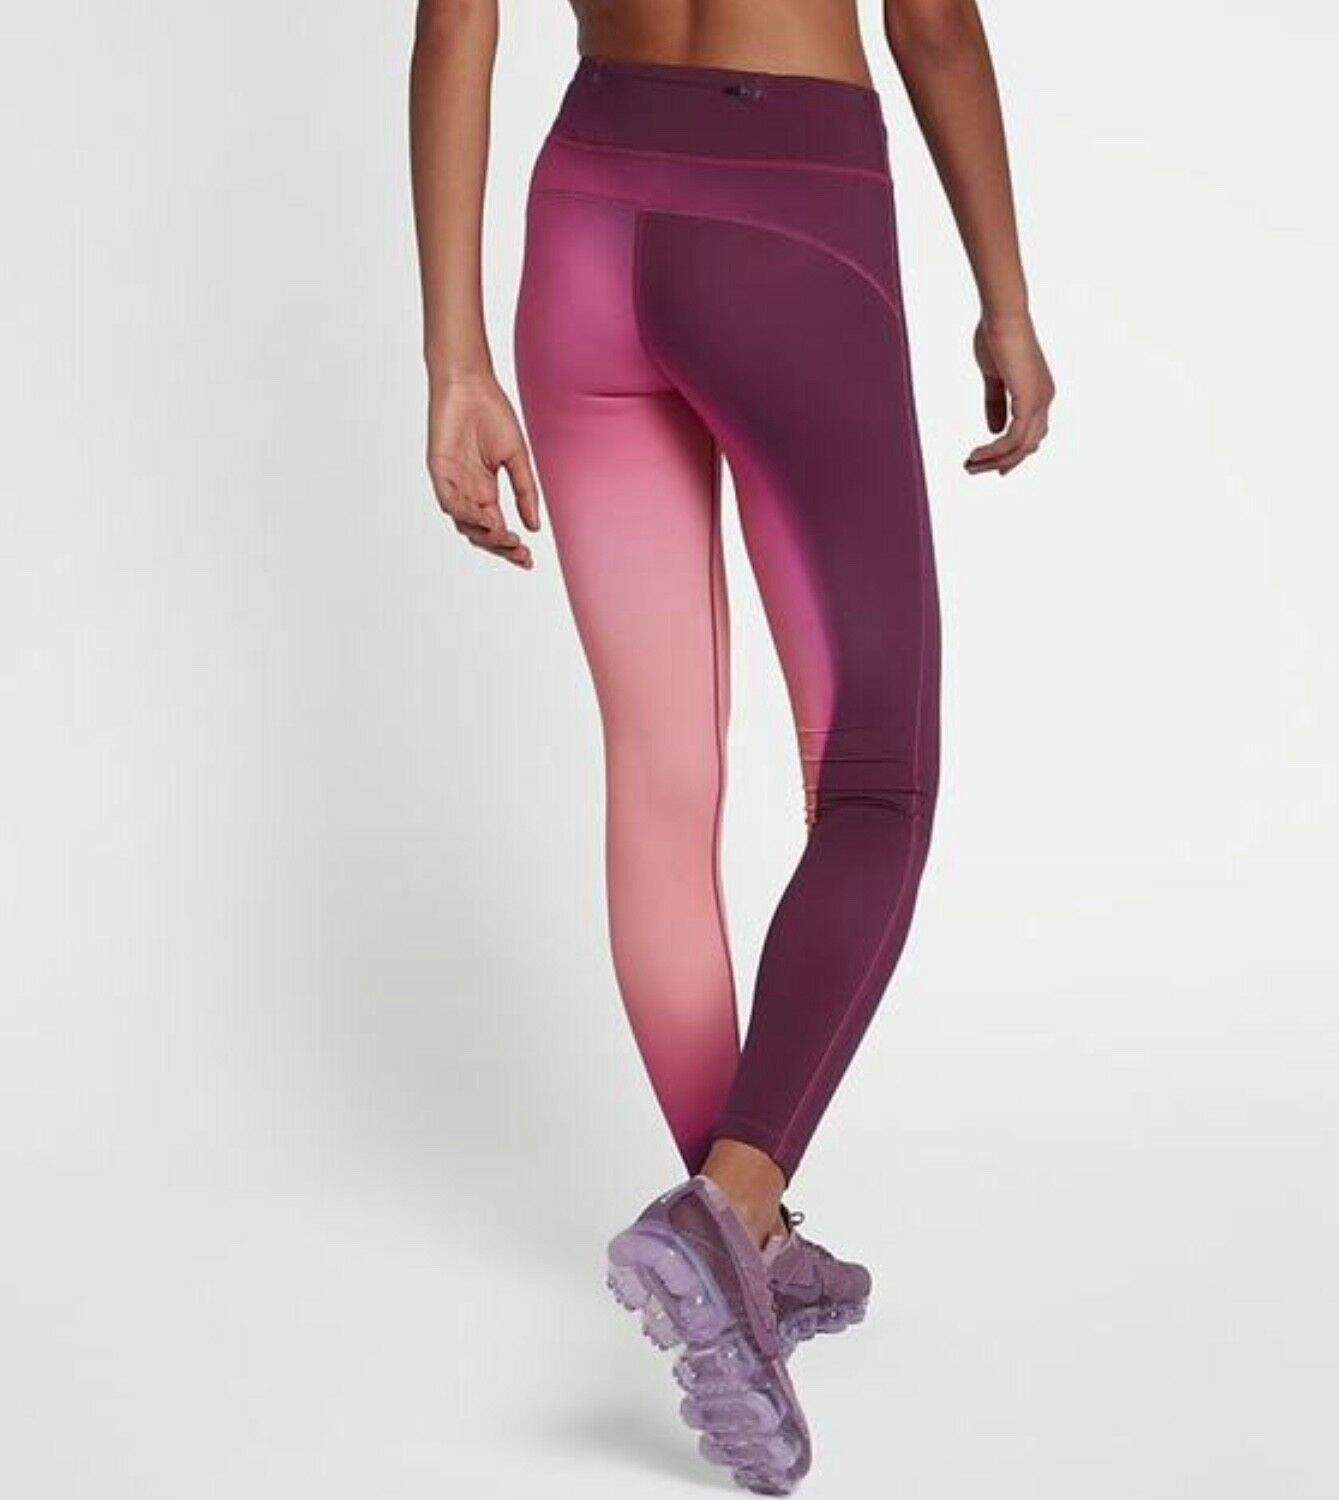 NIke Epic Lux Power Laufen Training Tights Gym Yoga  874747-609 Small